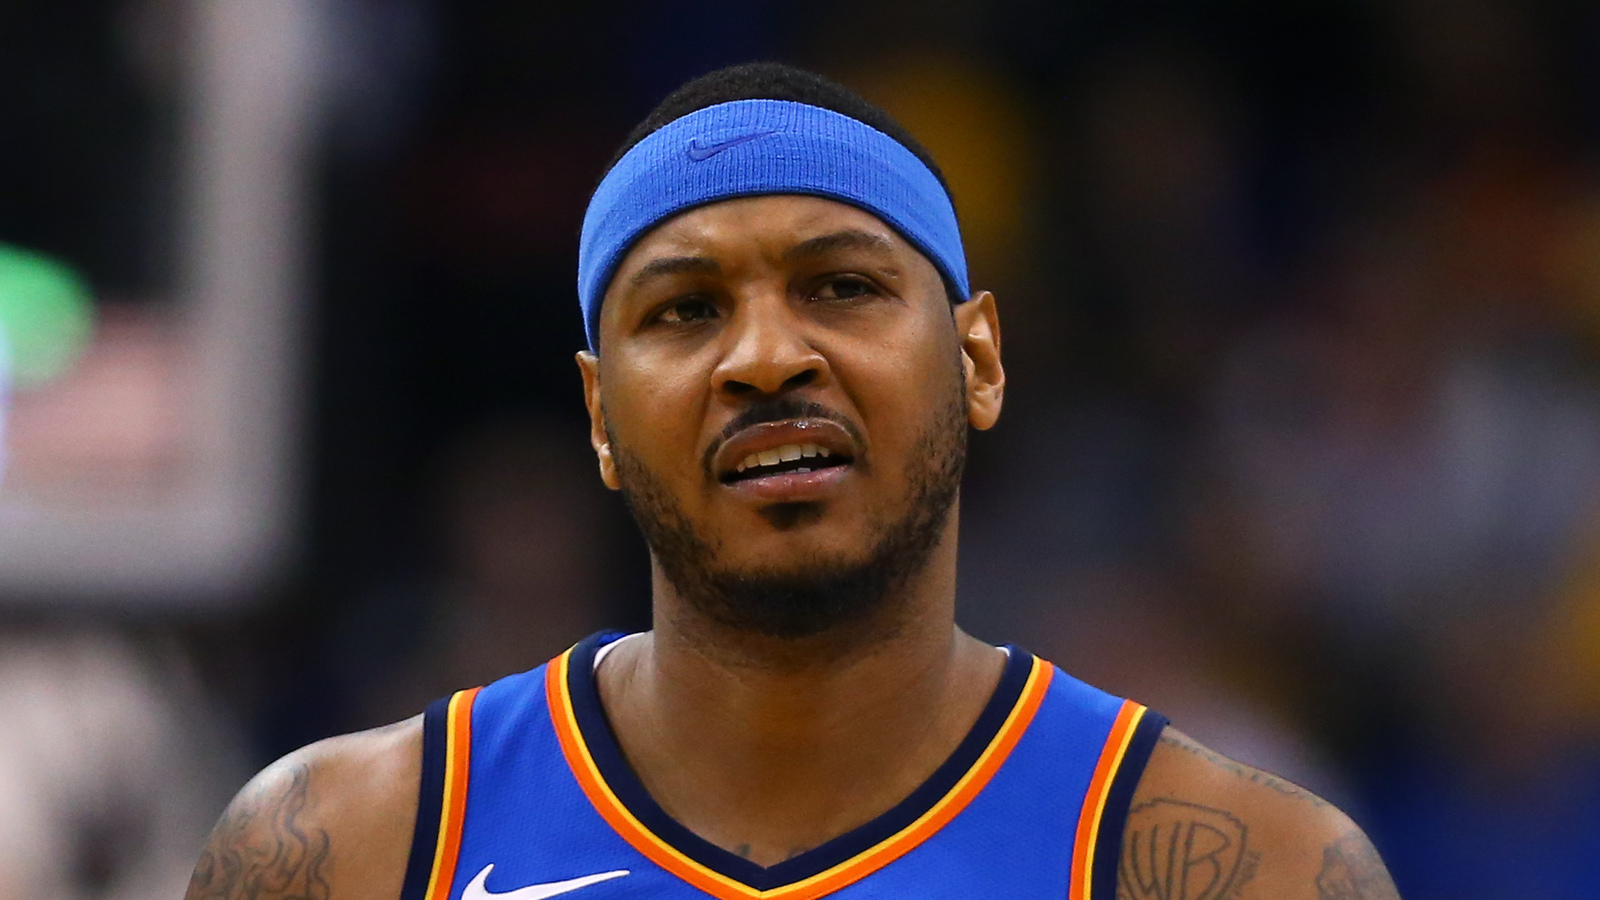 Carmelo Anthony Weighs In On Future Okc Not Being A Good Fit